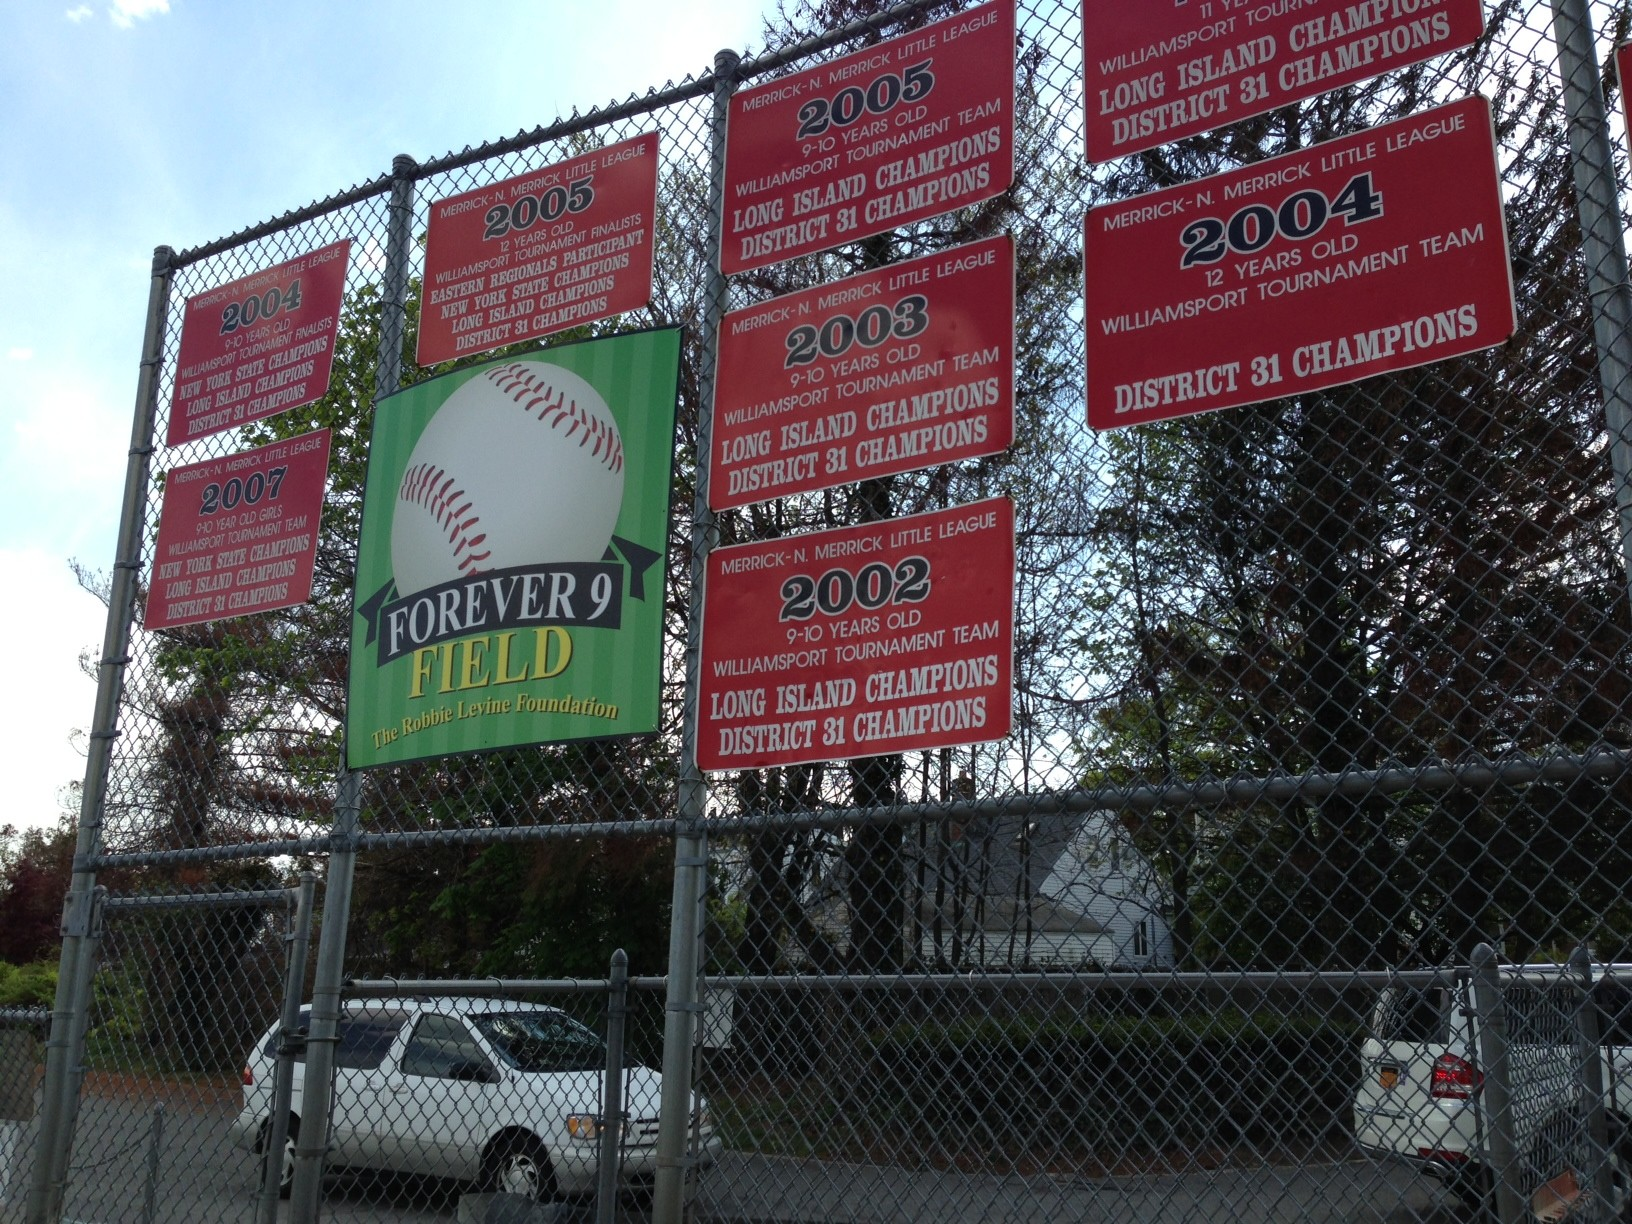 A Forever 9 Field sign amid the Merrick Little League�s championship banners.